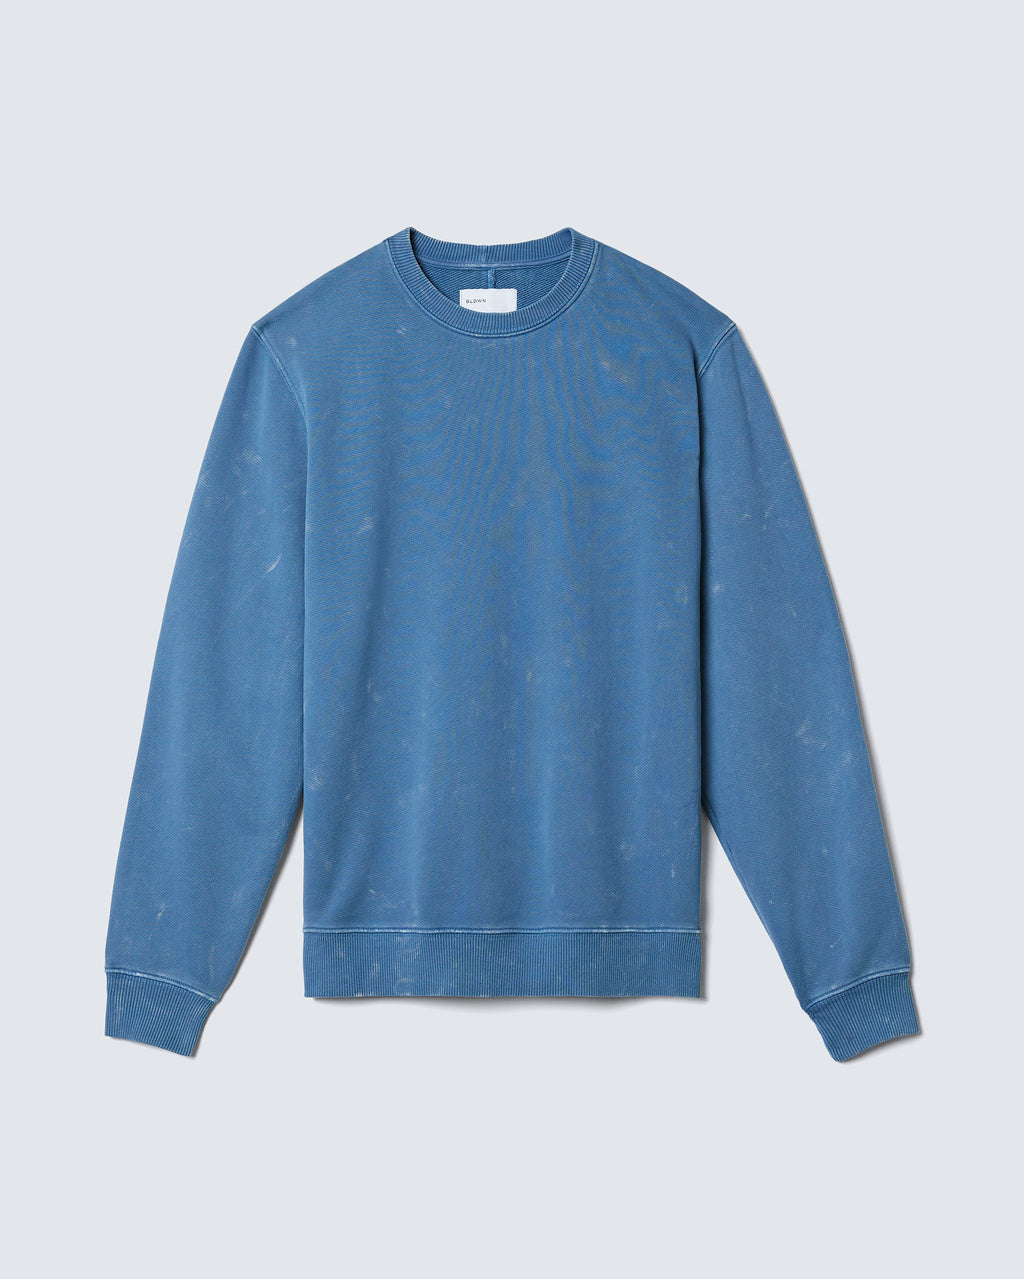 The Tyler Sweatshirt in Vintage Indigo